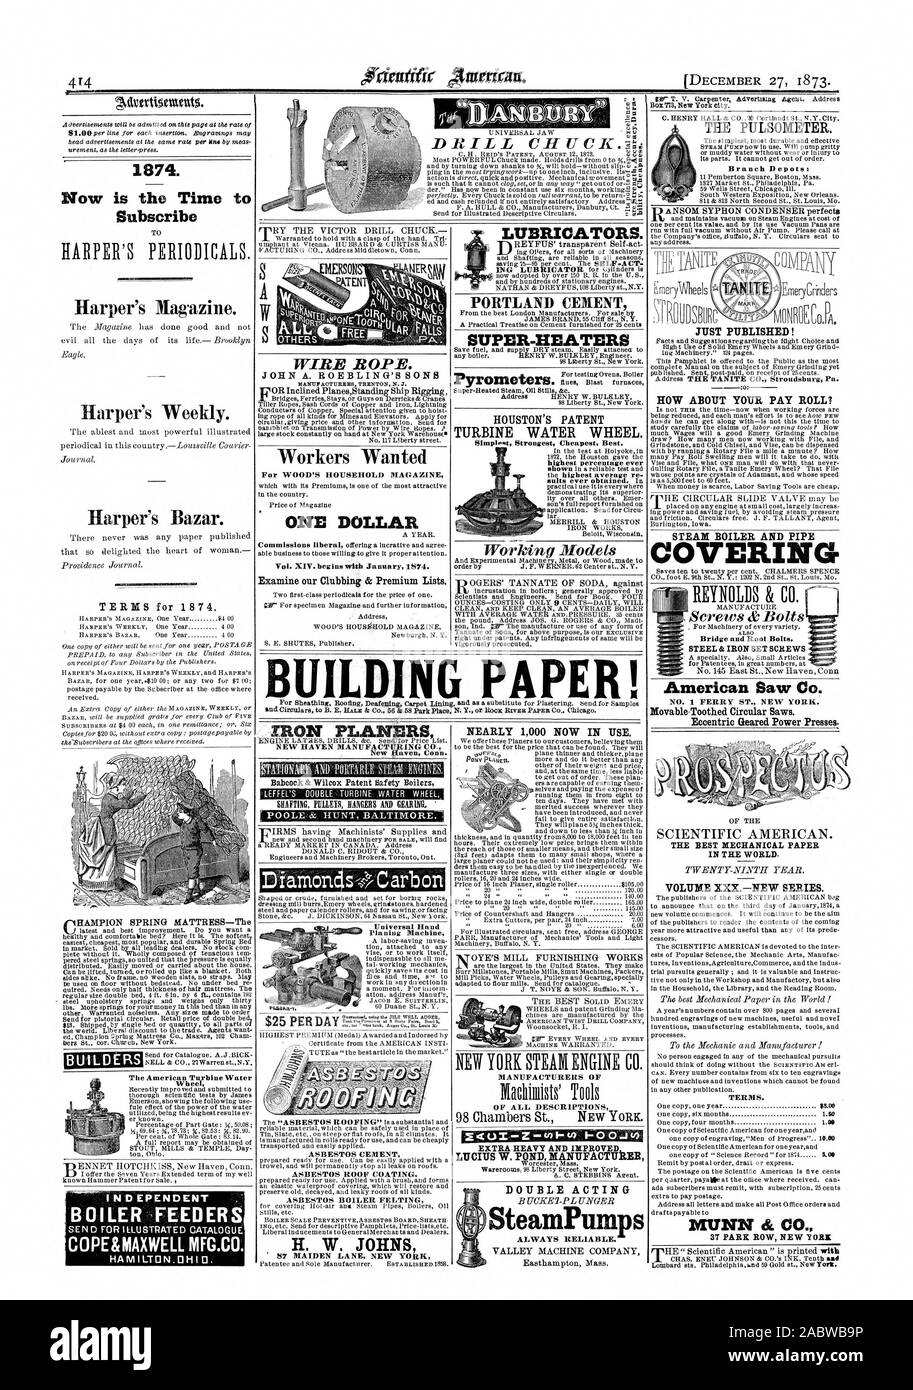 1874. Now is the Time to Subscribe Harper's Magazine. Harper's Weekly. Harper's Bazar. INDEPENDENT COPE&MAXWELL MFG.CO. r1HAMPION SPRING MATTRESS—The BUILDERS The American Turbine Water Wheel  DRILL CITUCK.7.1.; WIRE ROPE. JOHN A. ROEBLING'S SONS VOR Inclined PlanesStanding Ship Rigging Workers Wanted For WOOD'S HOUSEHOLD MAGAZINE ONE DOLLAR Vol. XIV. begins with January 1874. Examine our Clubbing & Premium Lists. NEW HAVEN MANUFACTURING CO. New Haven Conn. HOUSTON'S PATENT TURBINE WATER WHEEL. Simplest Strongest Cheapest. Best. MANUFACTURERS OF OF ALL DESCRIPTIONS HOW ABOUT YOUR PAY ROLL Stock Photo